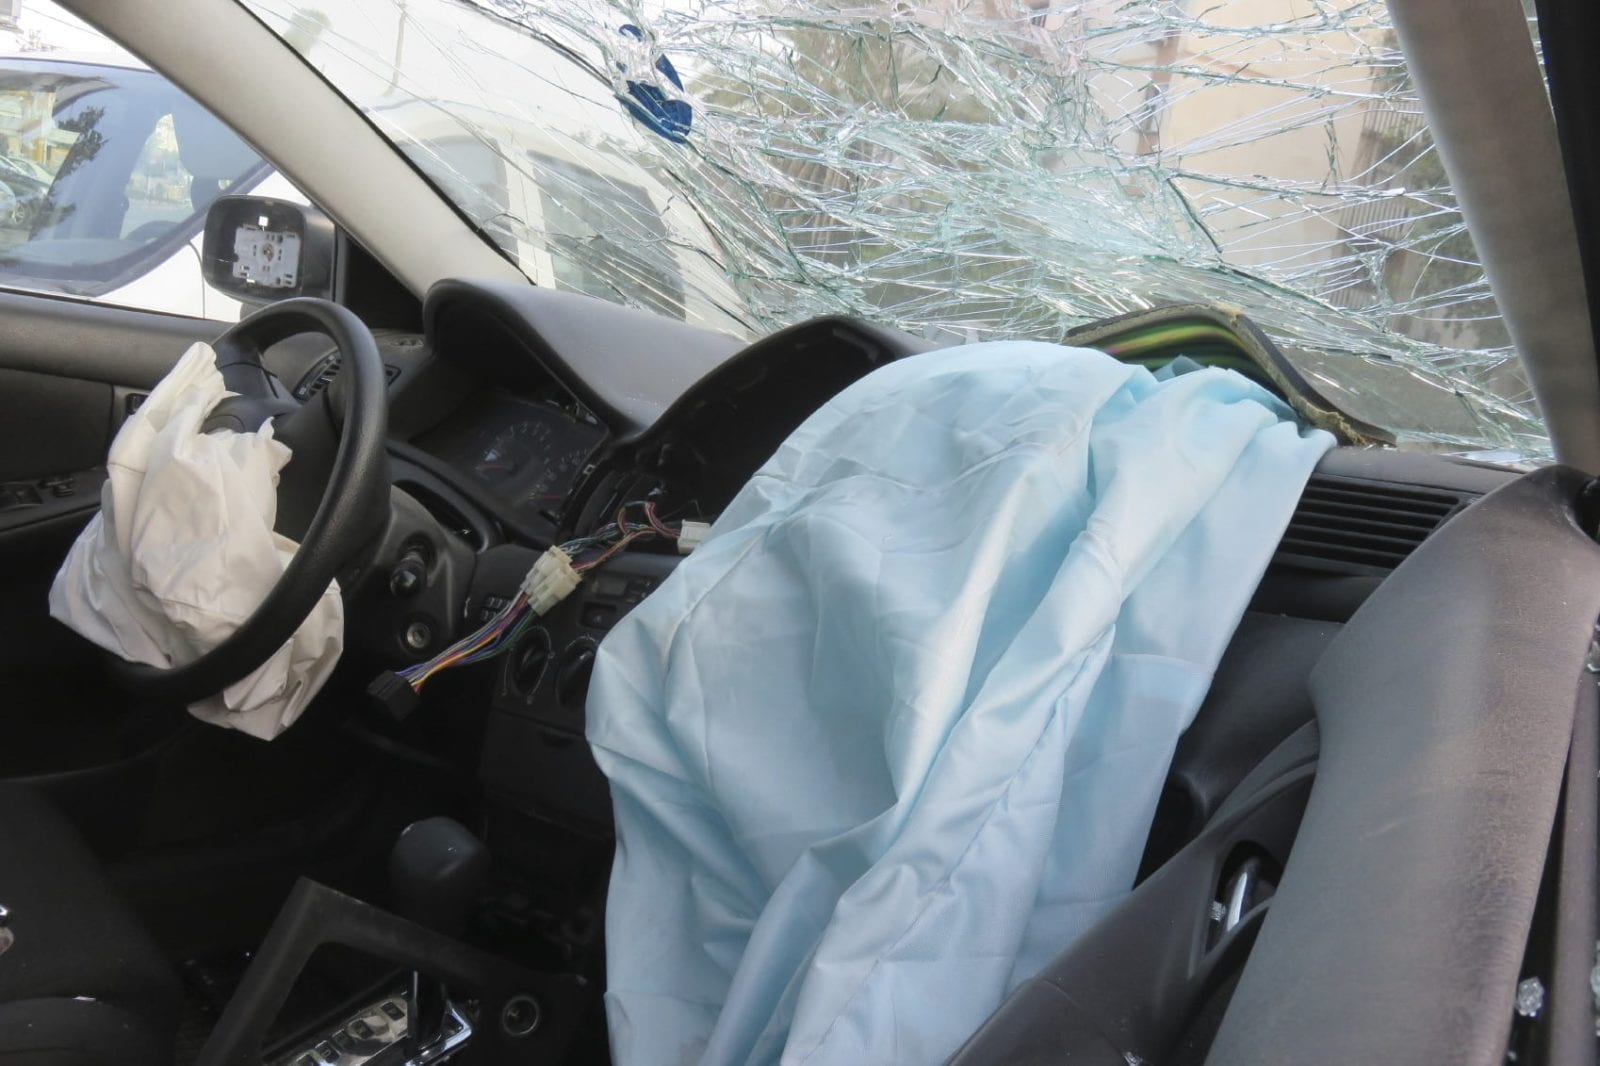 Airbag Deployed After Car Accident Stock Photo